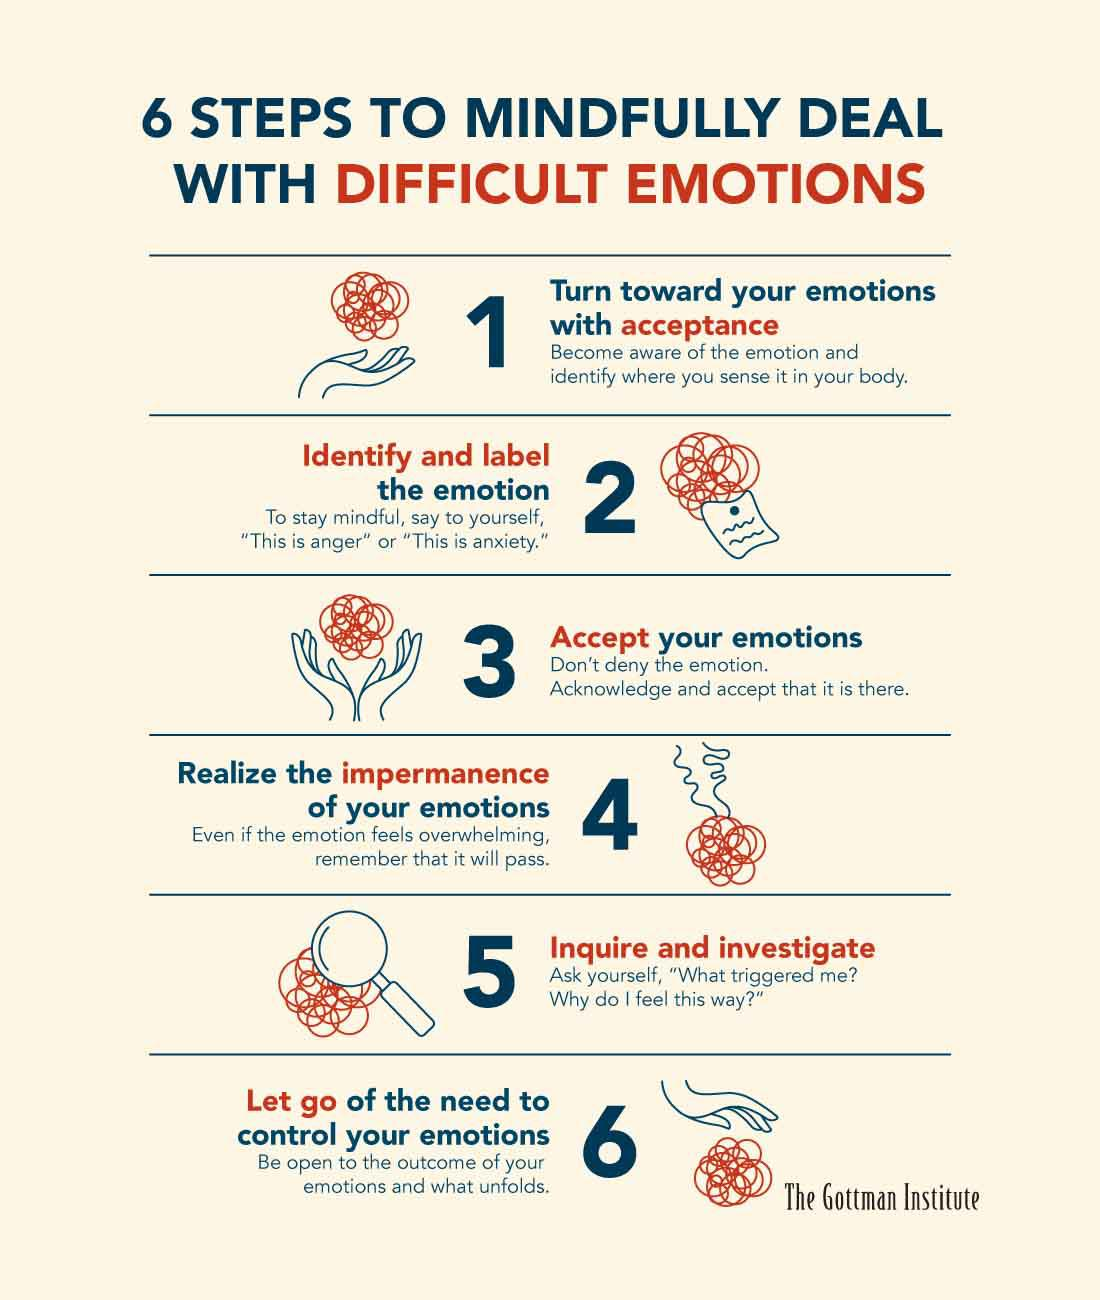 How to deal with difficult emotions